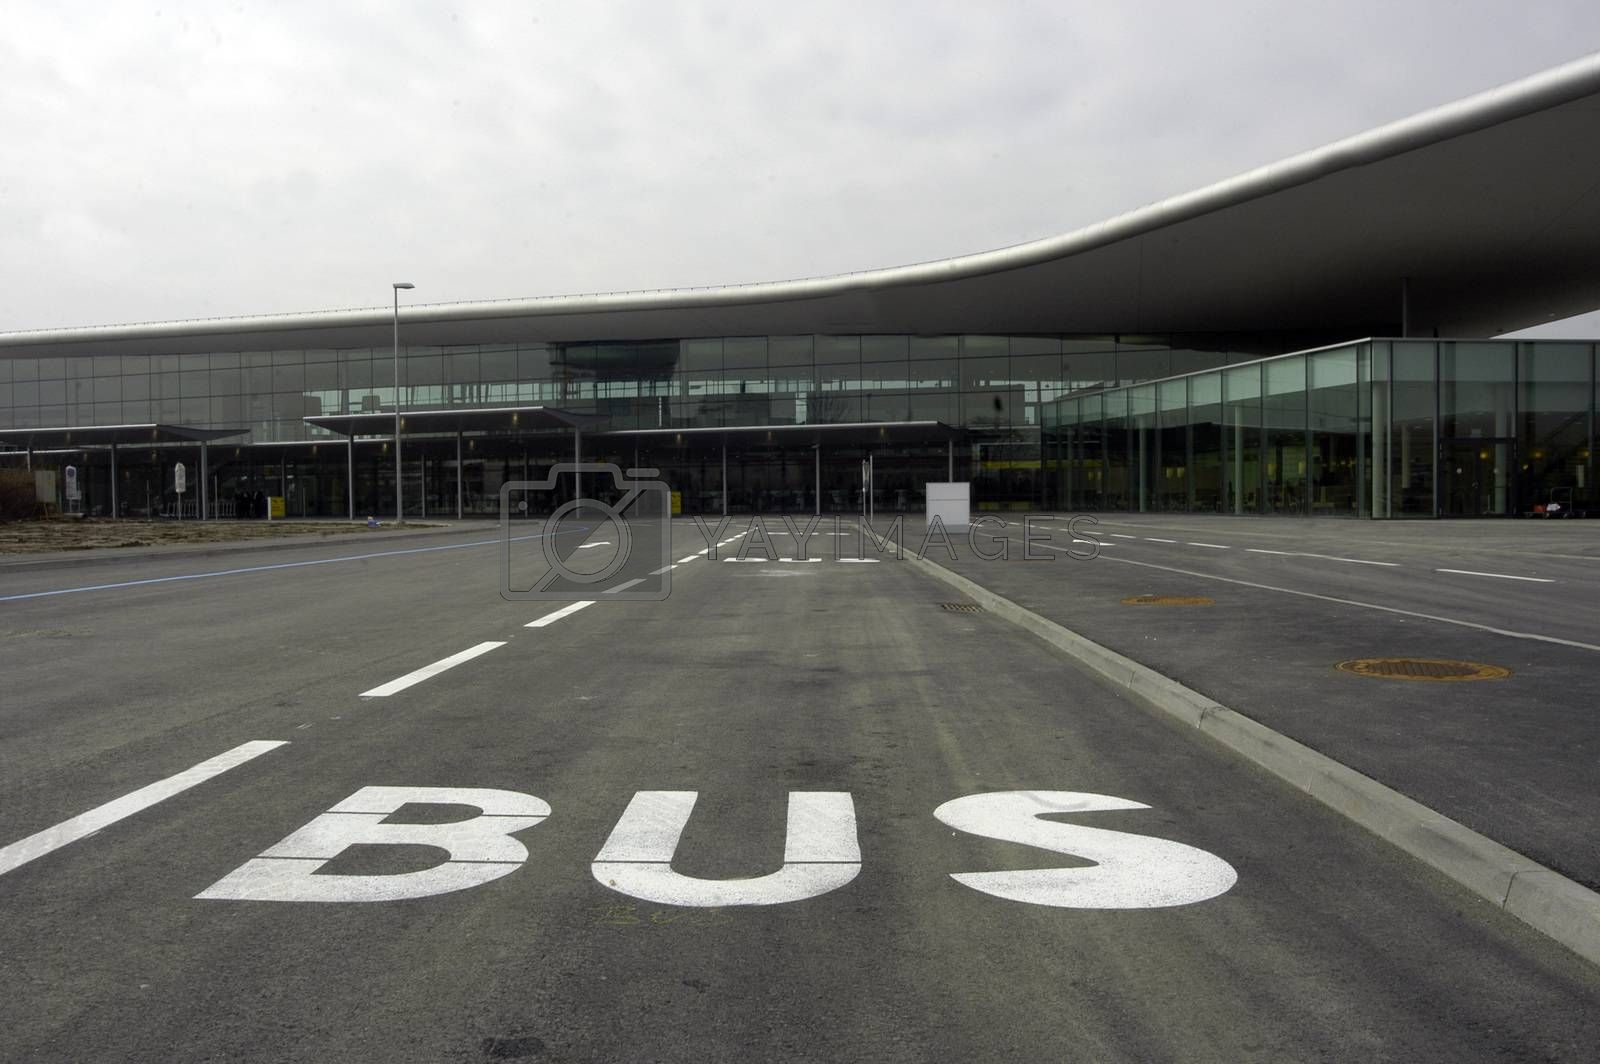 white bus lane mark on the street in front of an airport